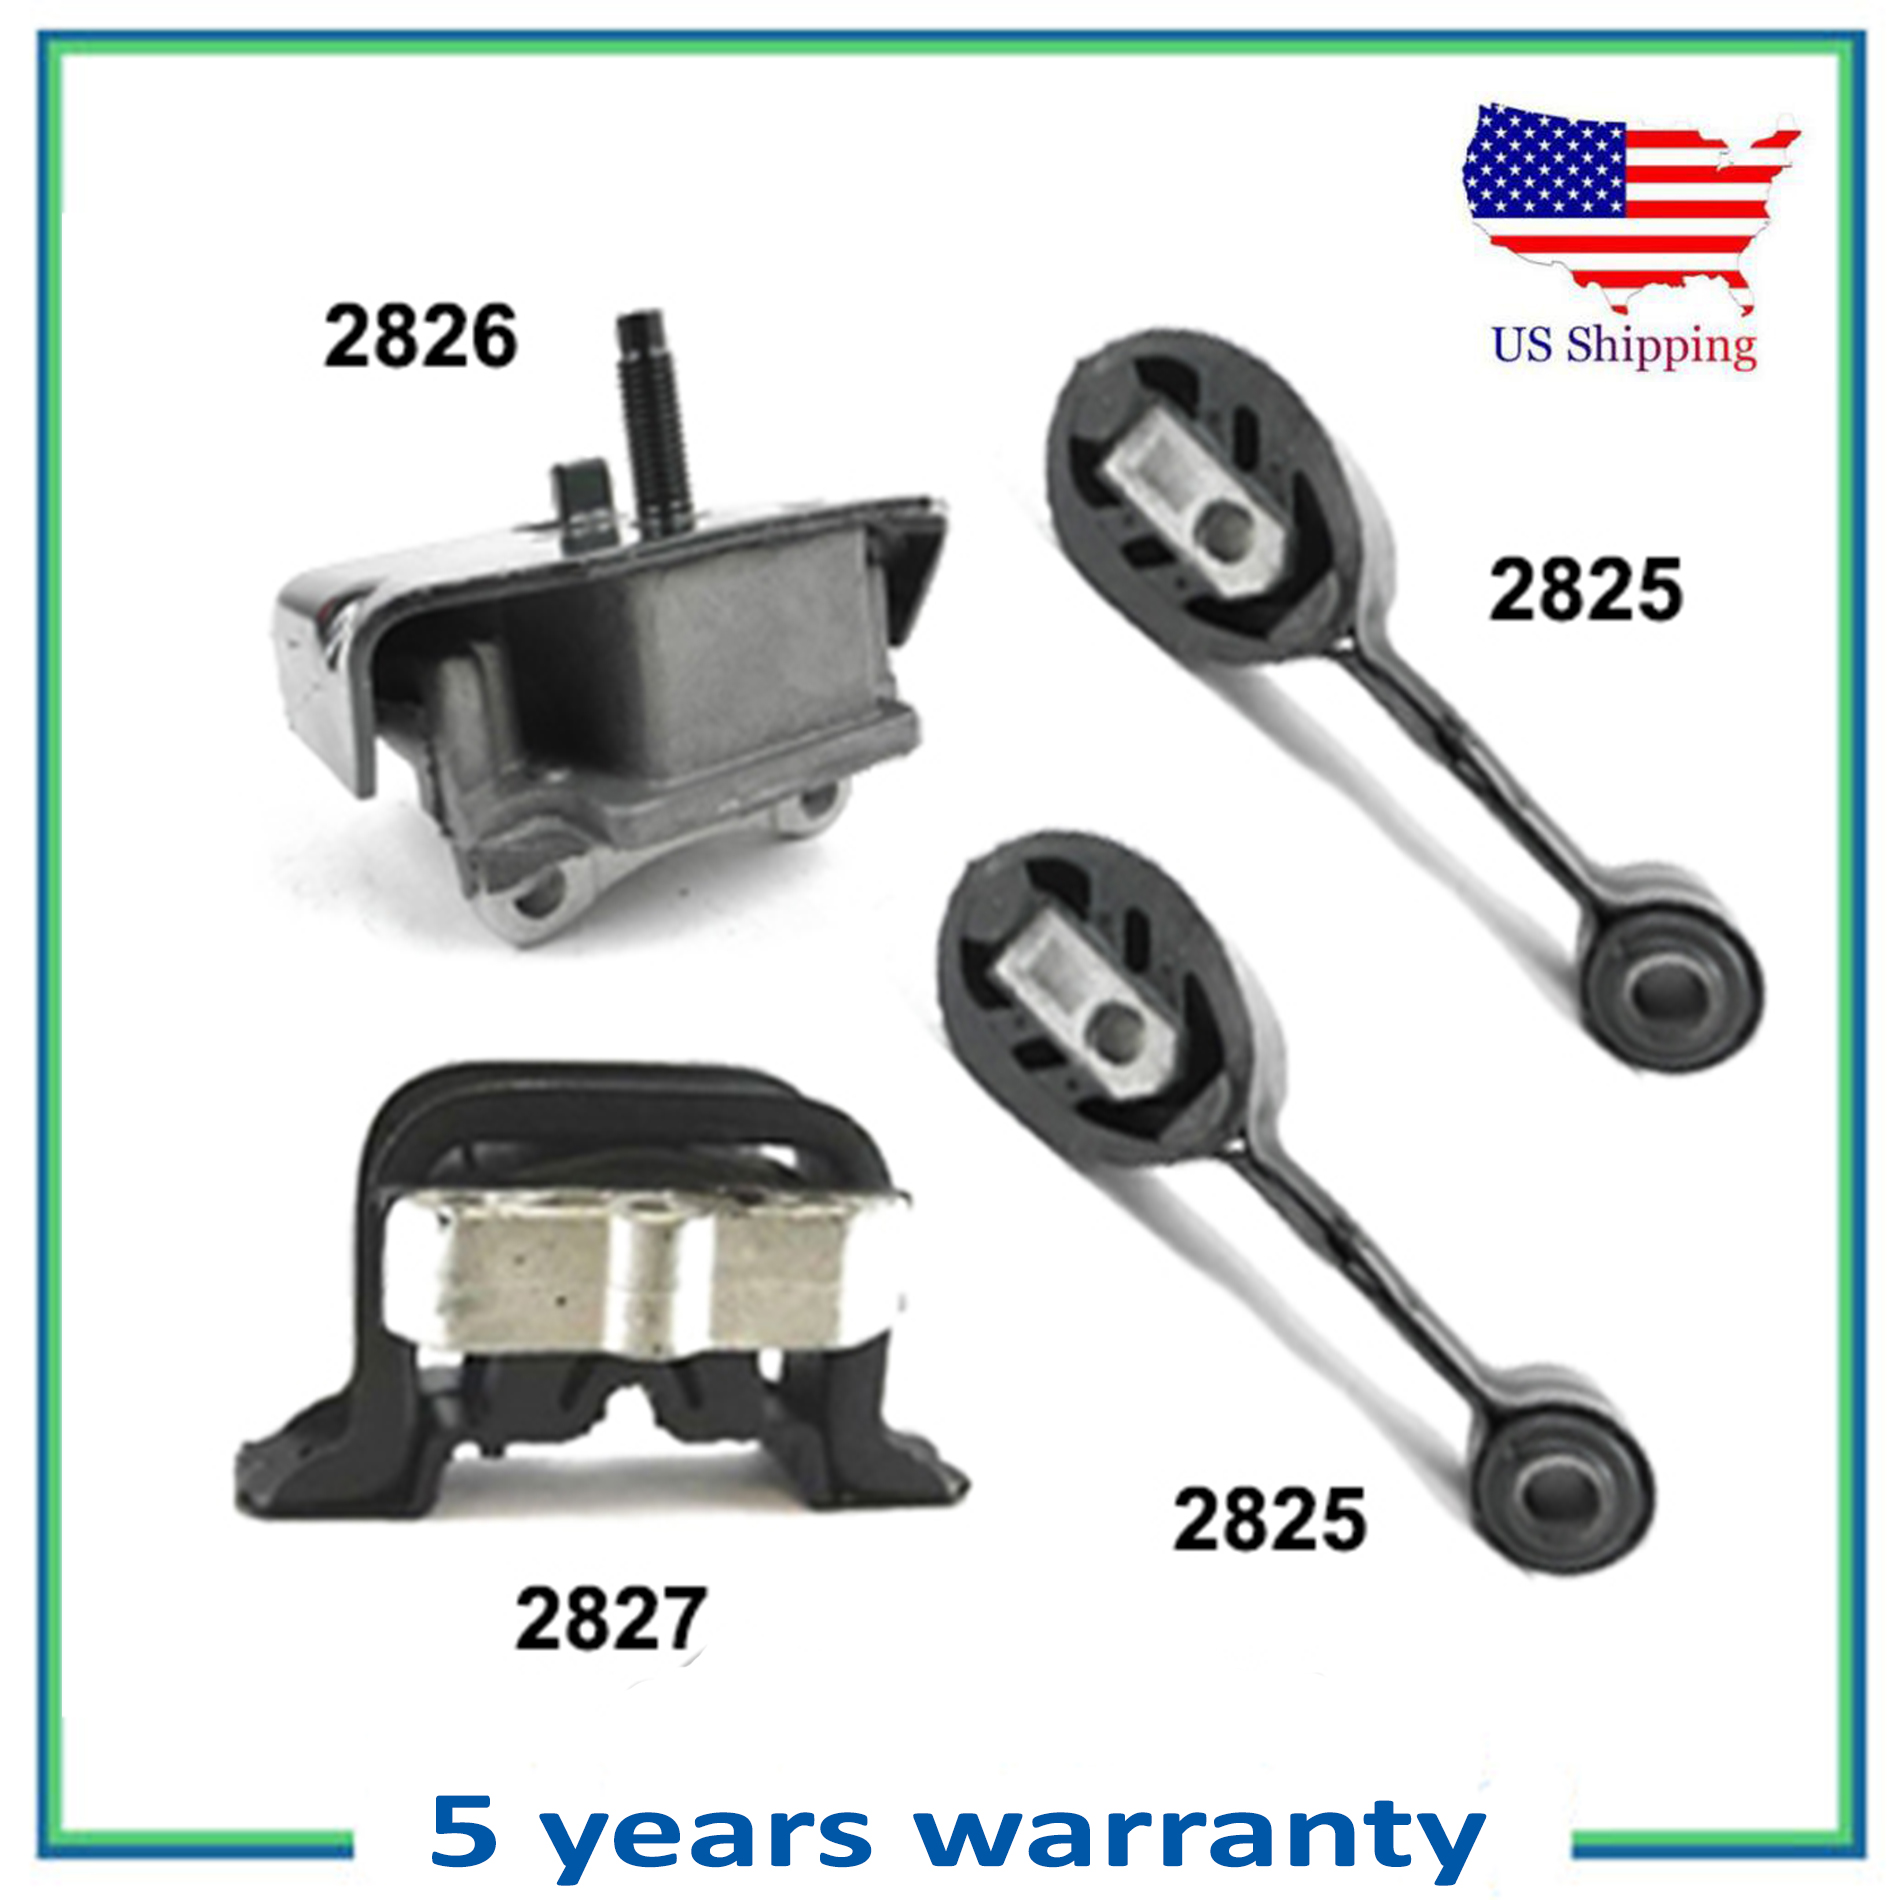 U.S Ignition System Engine Motor /& Trans Mount Replacement for 1992-2002 Saturn SC//SL//SW Series 1.9L A2825 A2825 A2826 A2827